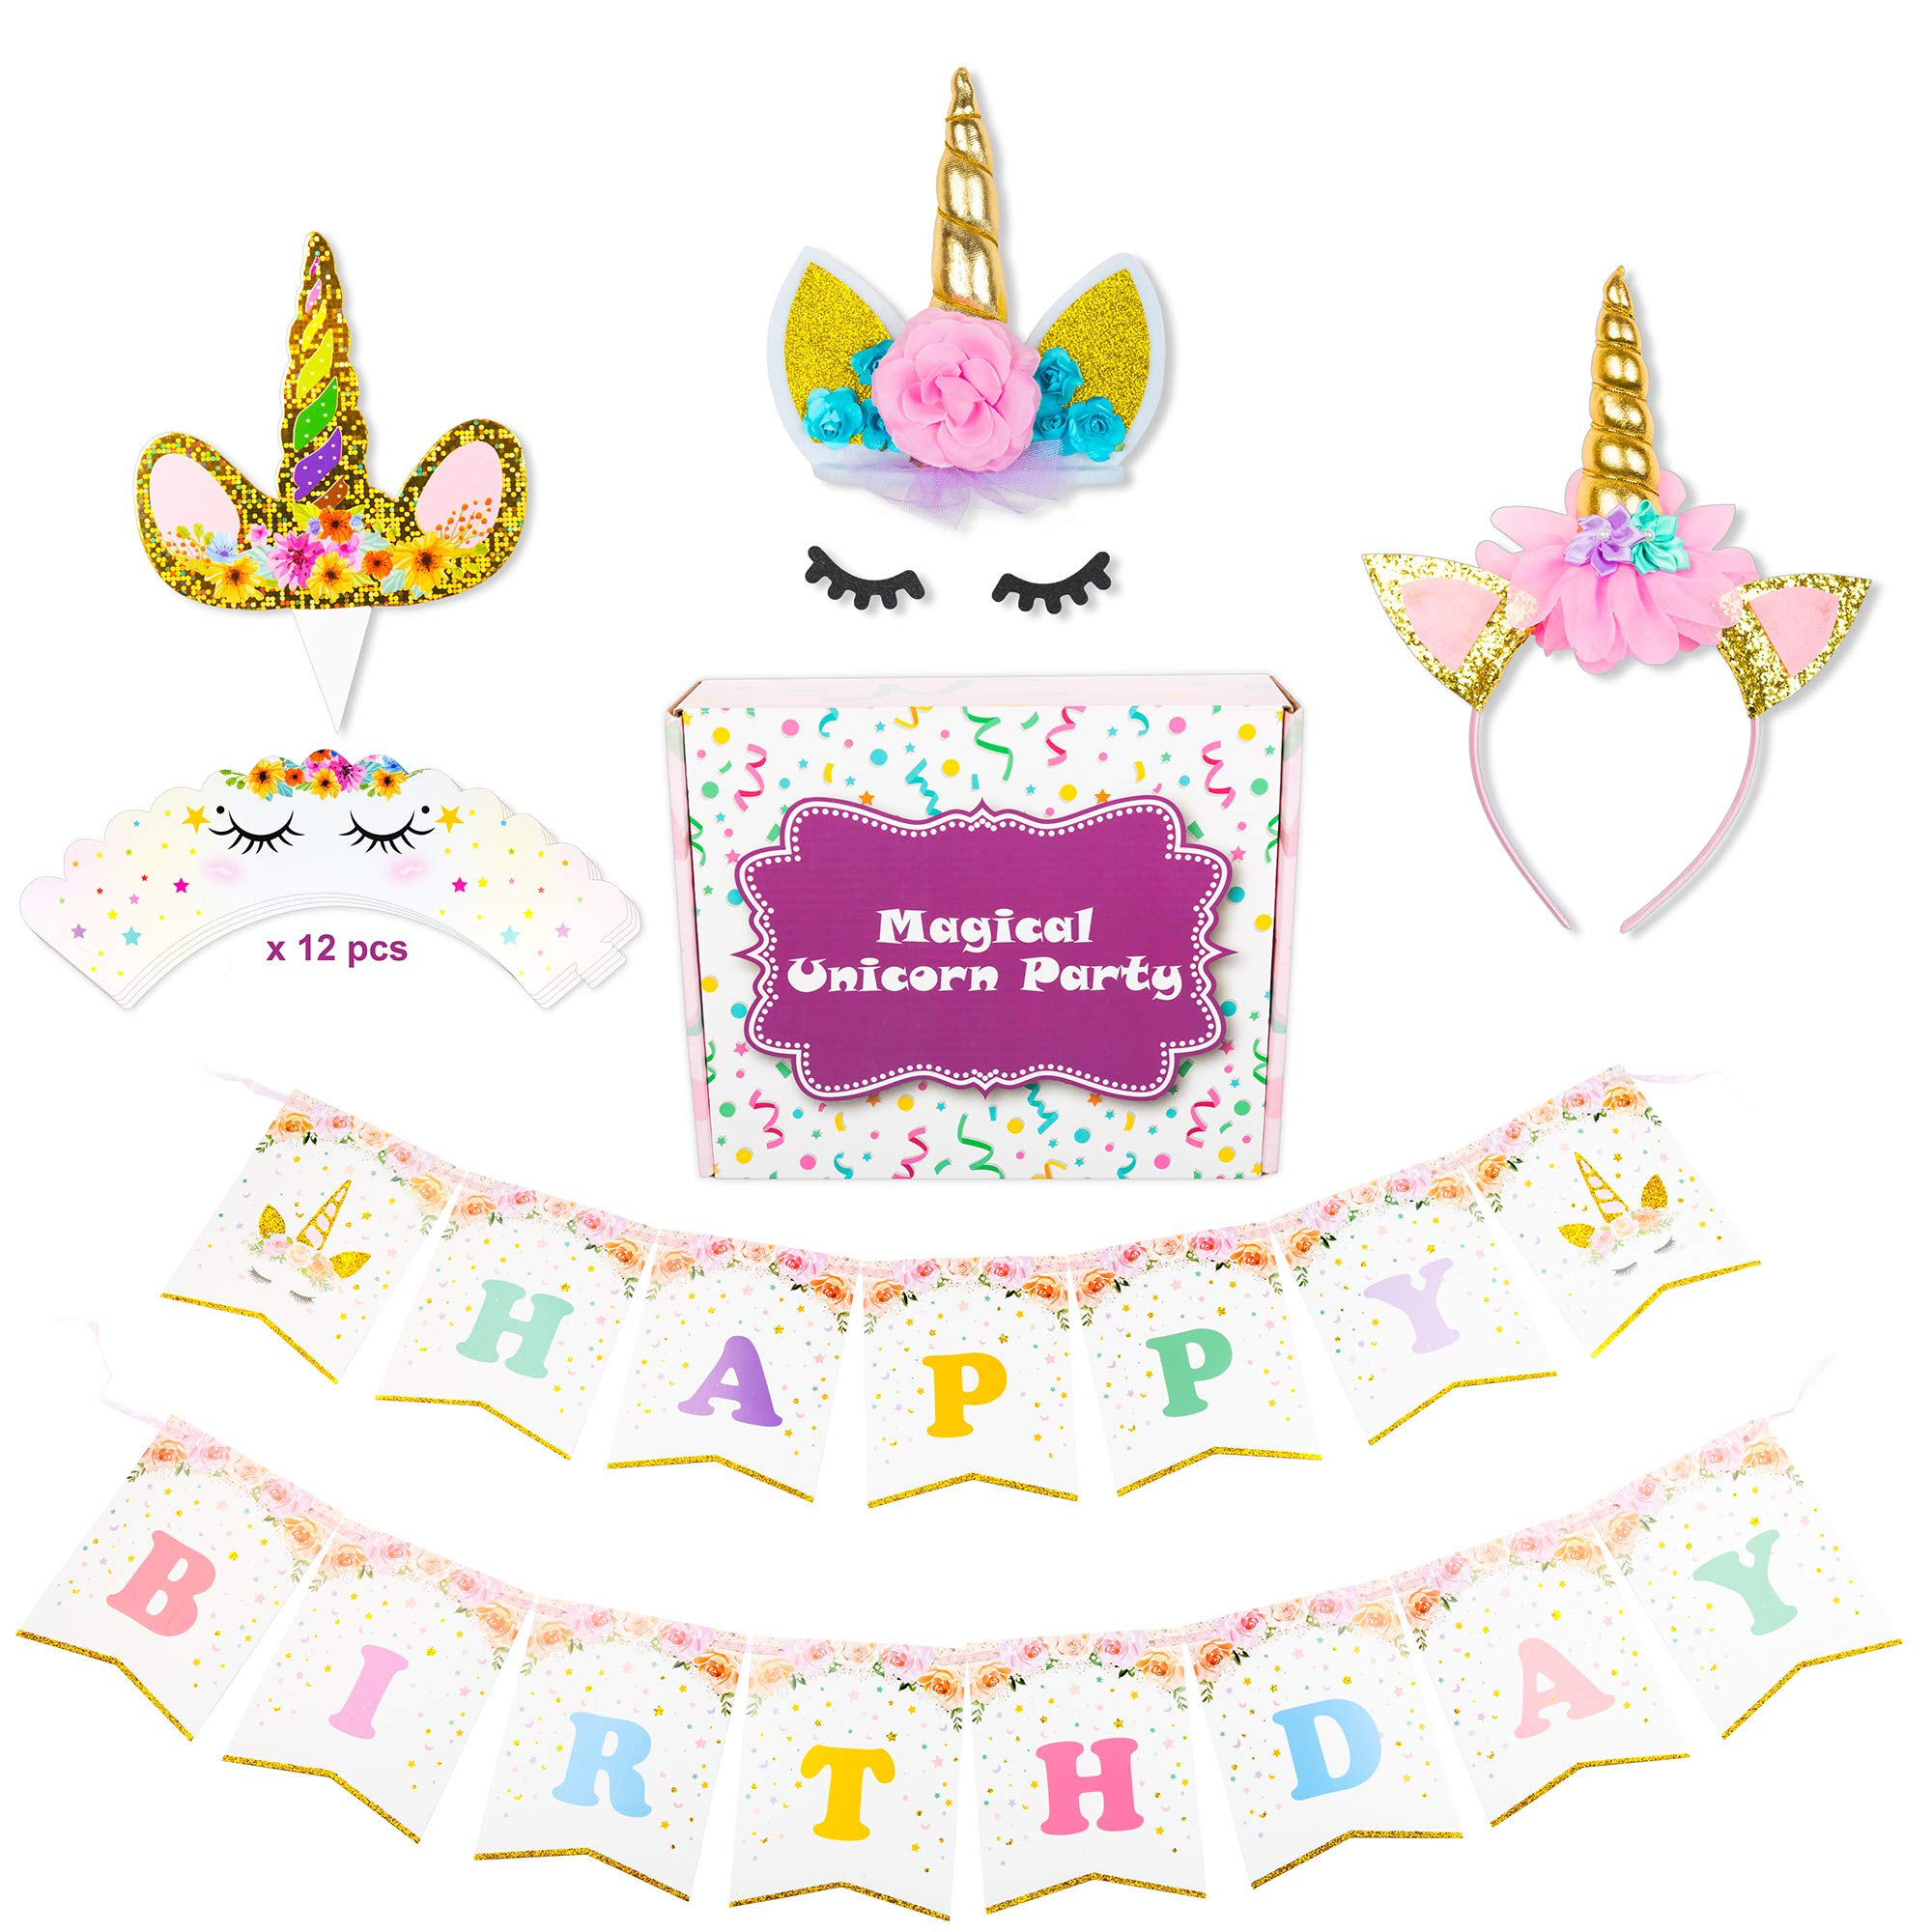 Magical Unicorn Party Supplies Decorations Set Pack, Happy Birthday Banner, Unicorn Golden Cake Topper with Eyelashes, Unicorn Golden Headband, x12 Unicorn Golden Cupcake Toppers, by RoTactX by RoTactX